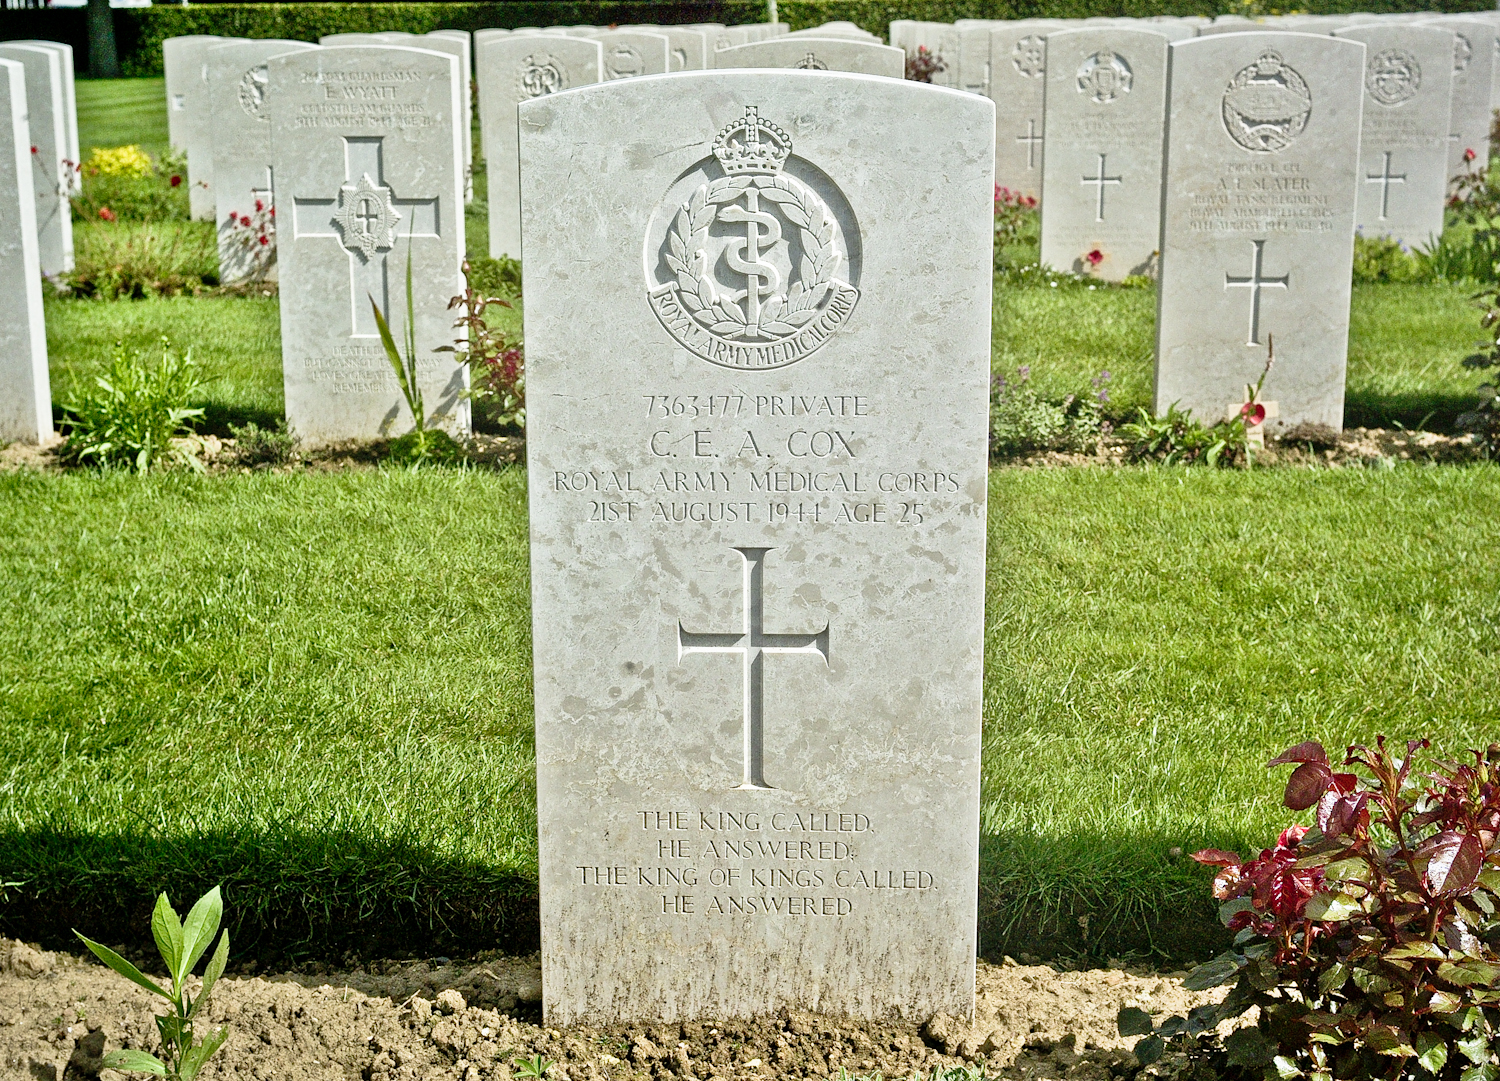 """""""The King called. He answered. The King of Kings called. He answered."""" Grave of C.E.A Coxat the British War Cemetery in Bayeux."""